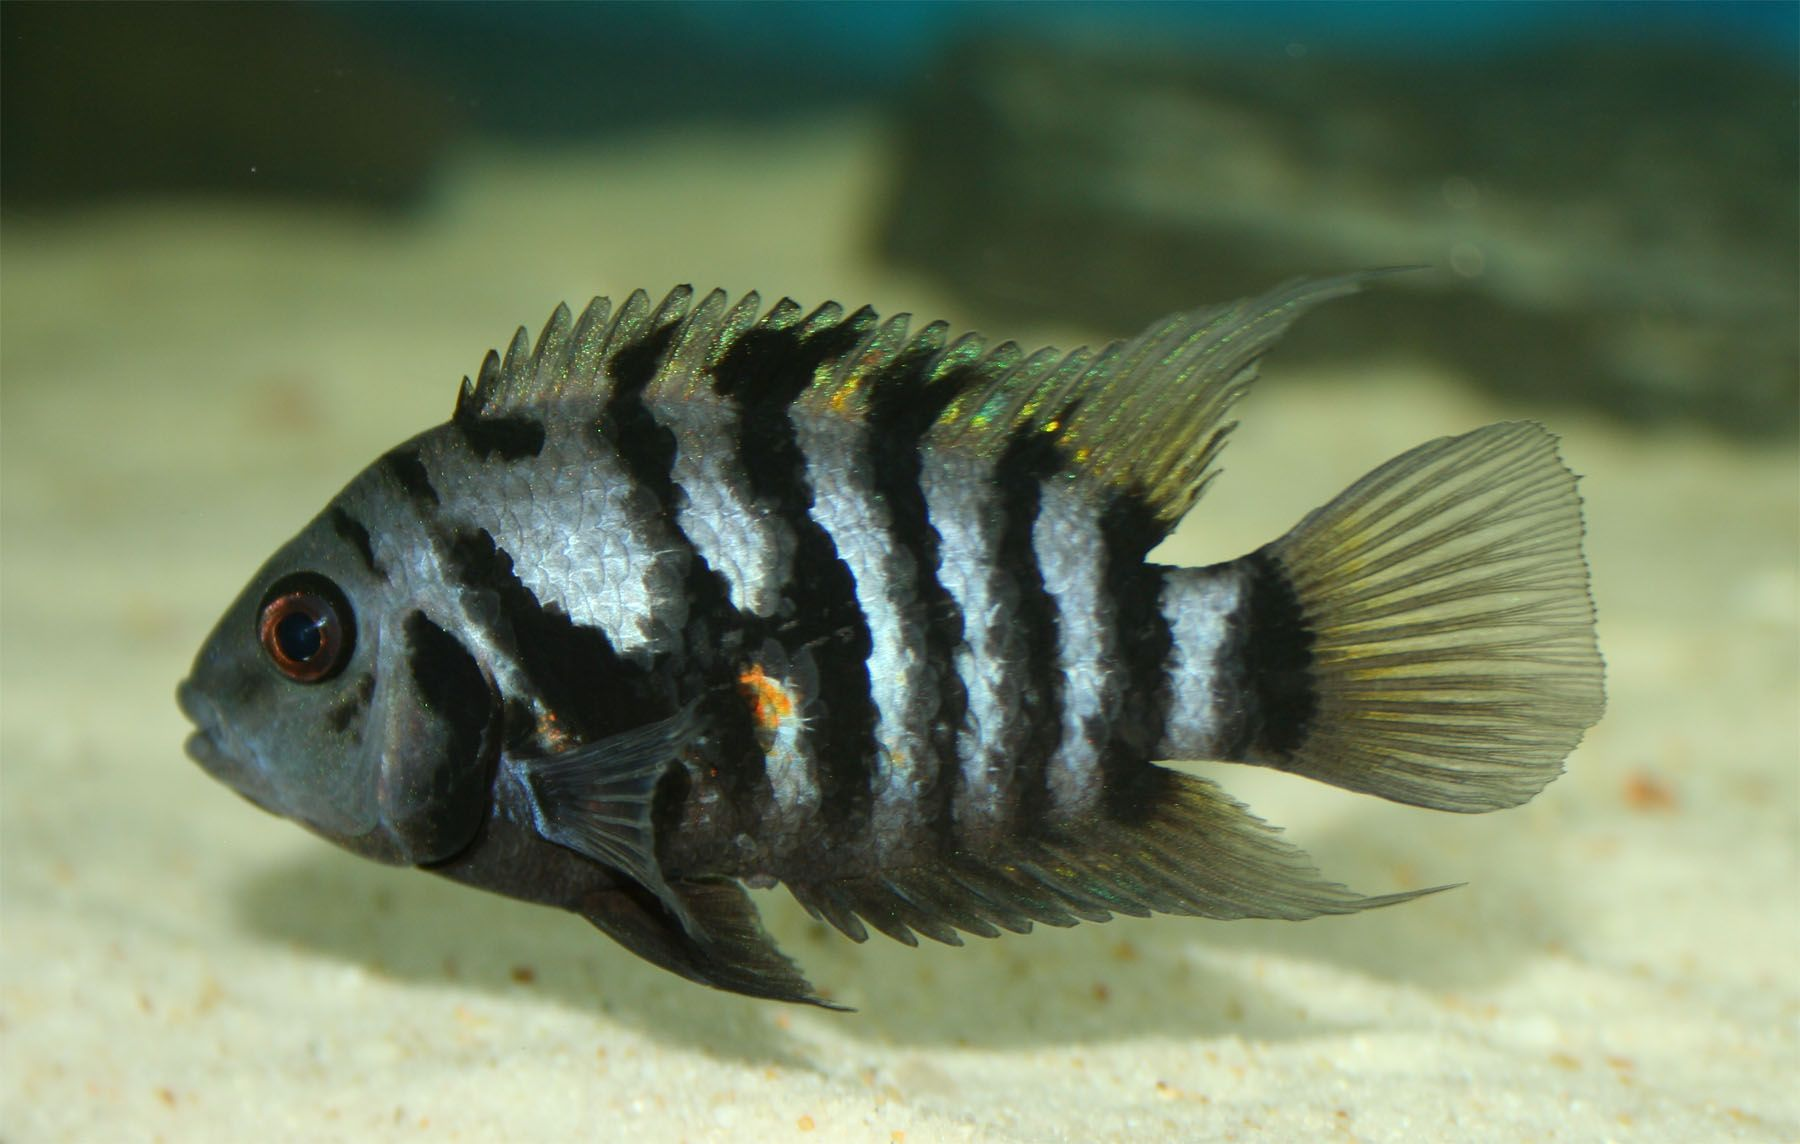 Freshwater aquarium fish information - Convict Cichlid Fish Information Of Black Convict Cichlids Pink Convict Cichlids Tips Of Breeding And Caring For Them